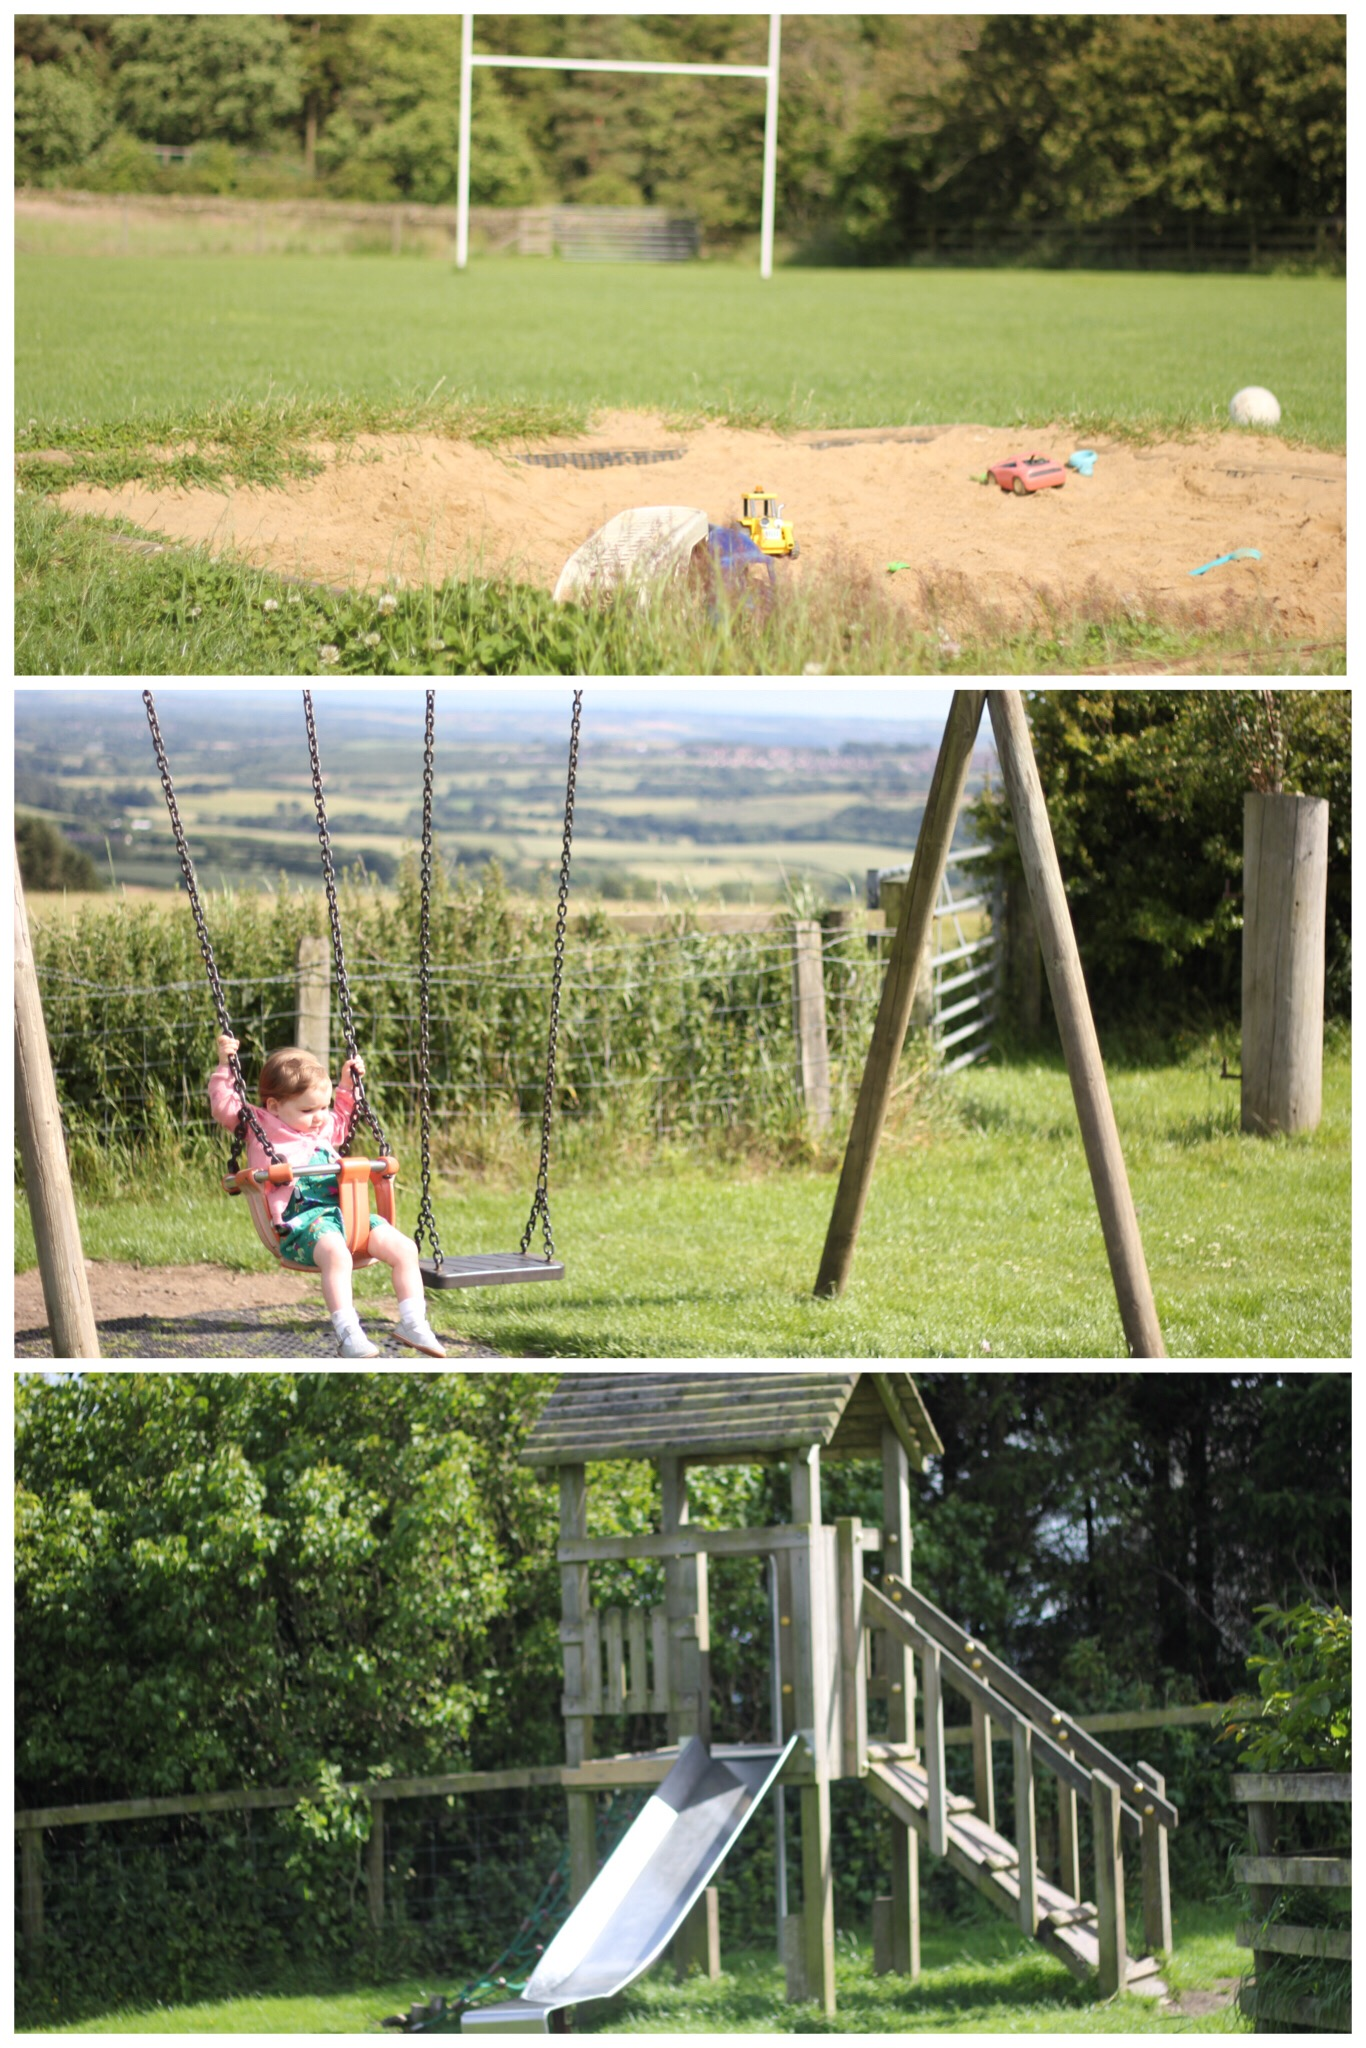 Broom House Farm Coffee Shop Play Equipment Children Sprog on the Tyne Slide Swings Sand Pit